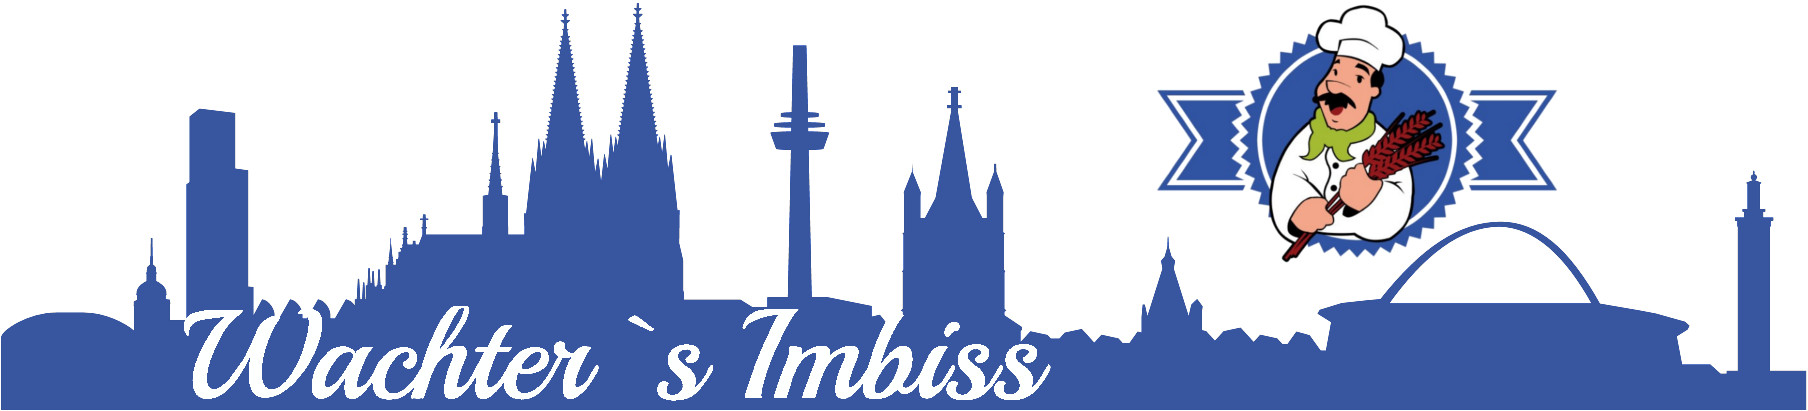 Wachters Imbiss